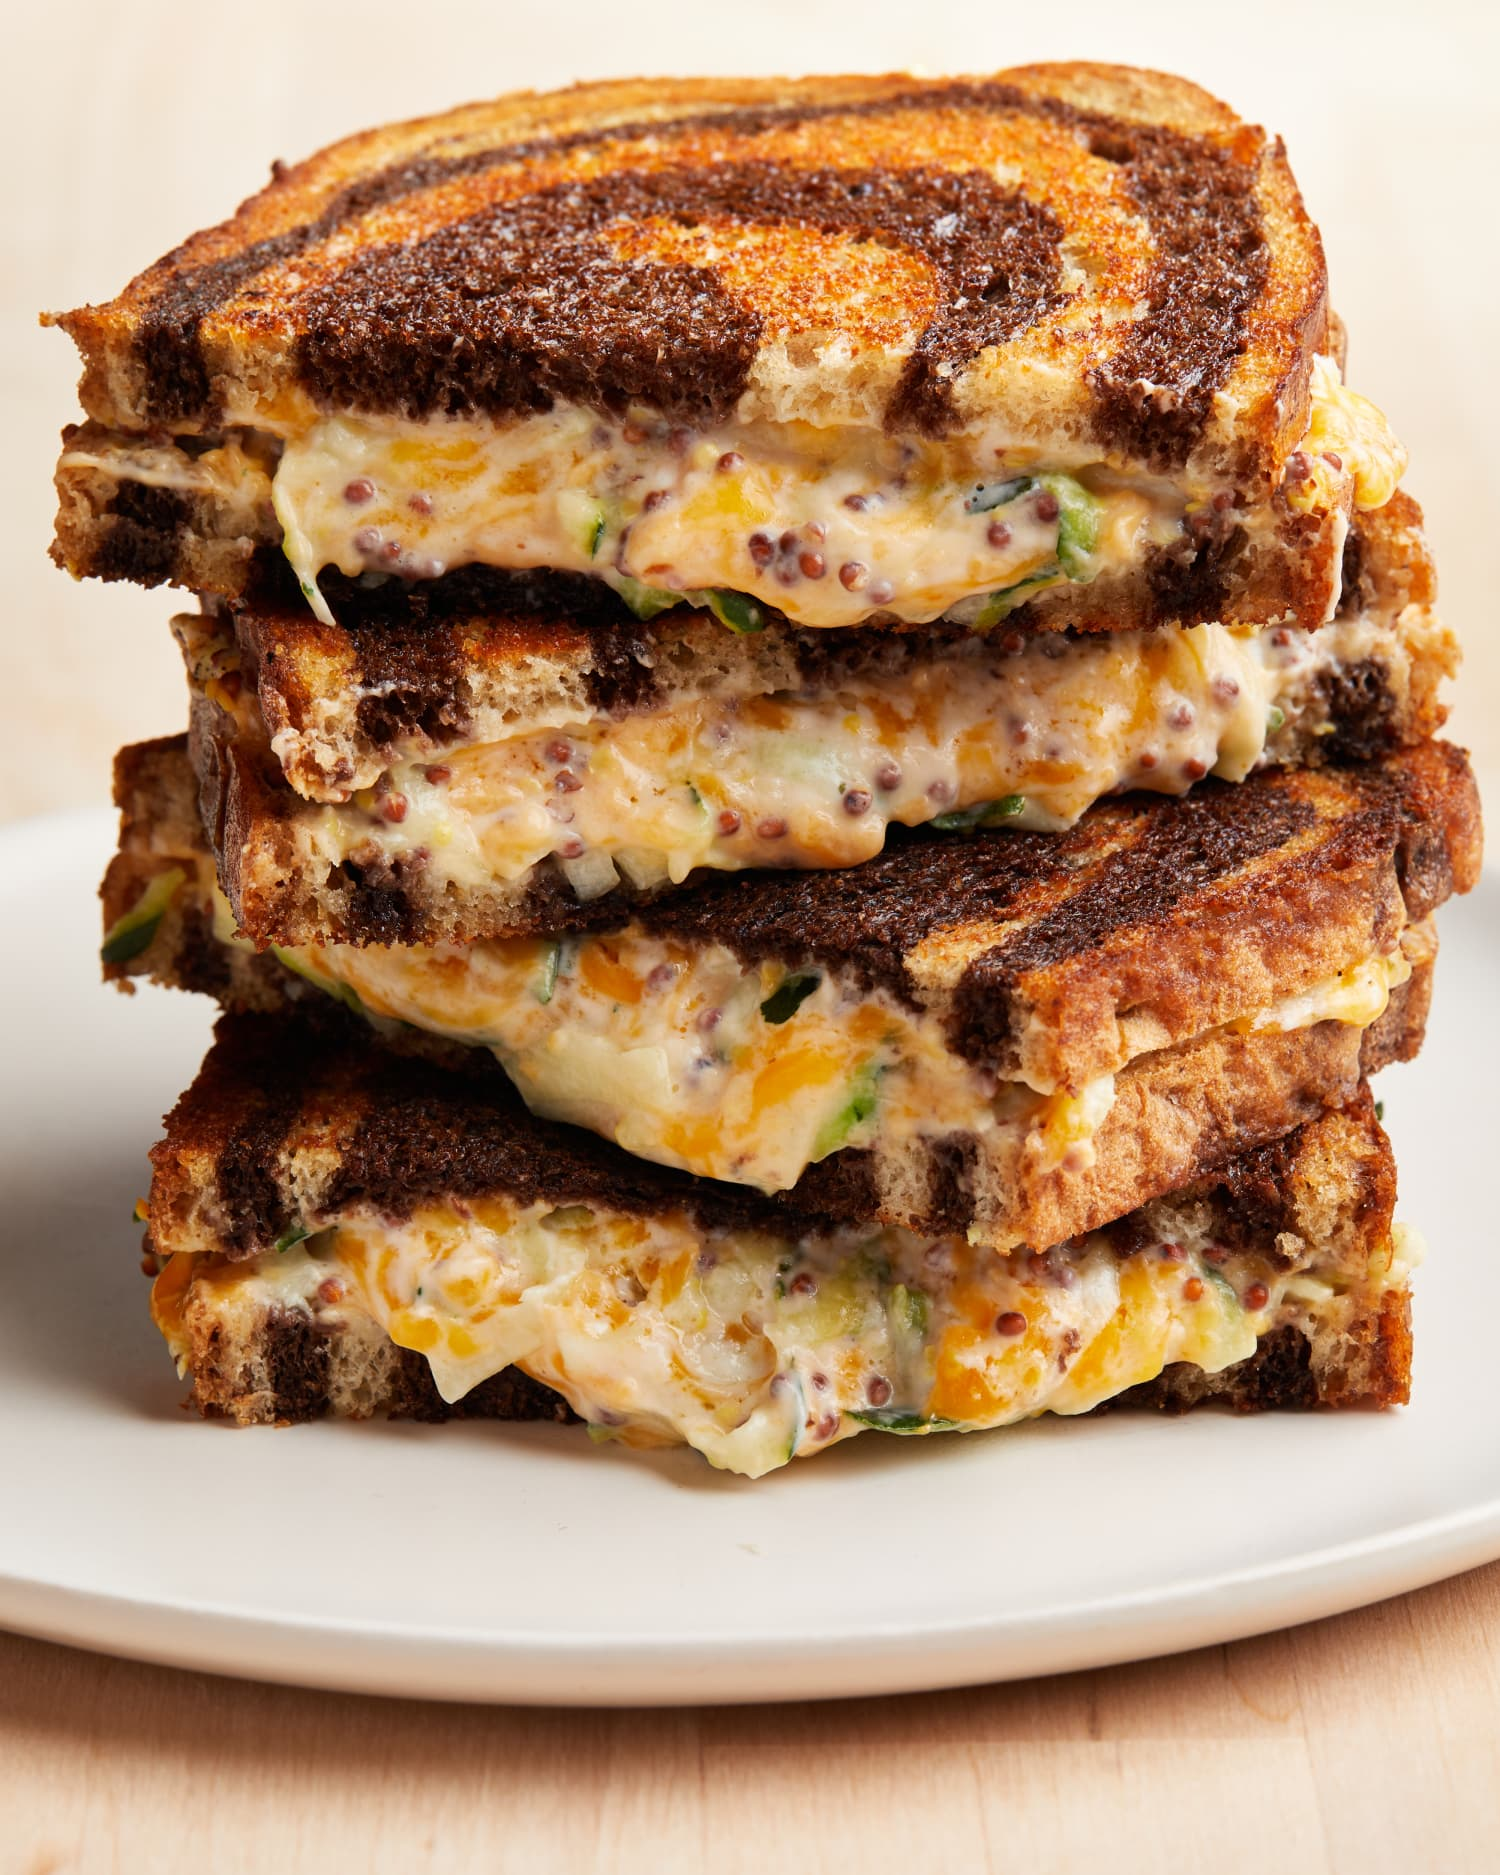 Zucchini Melts Are the Summery Grilled Cheese You Need to Try